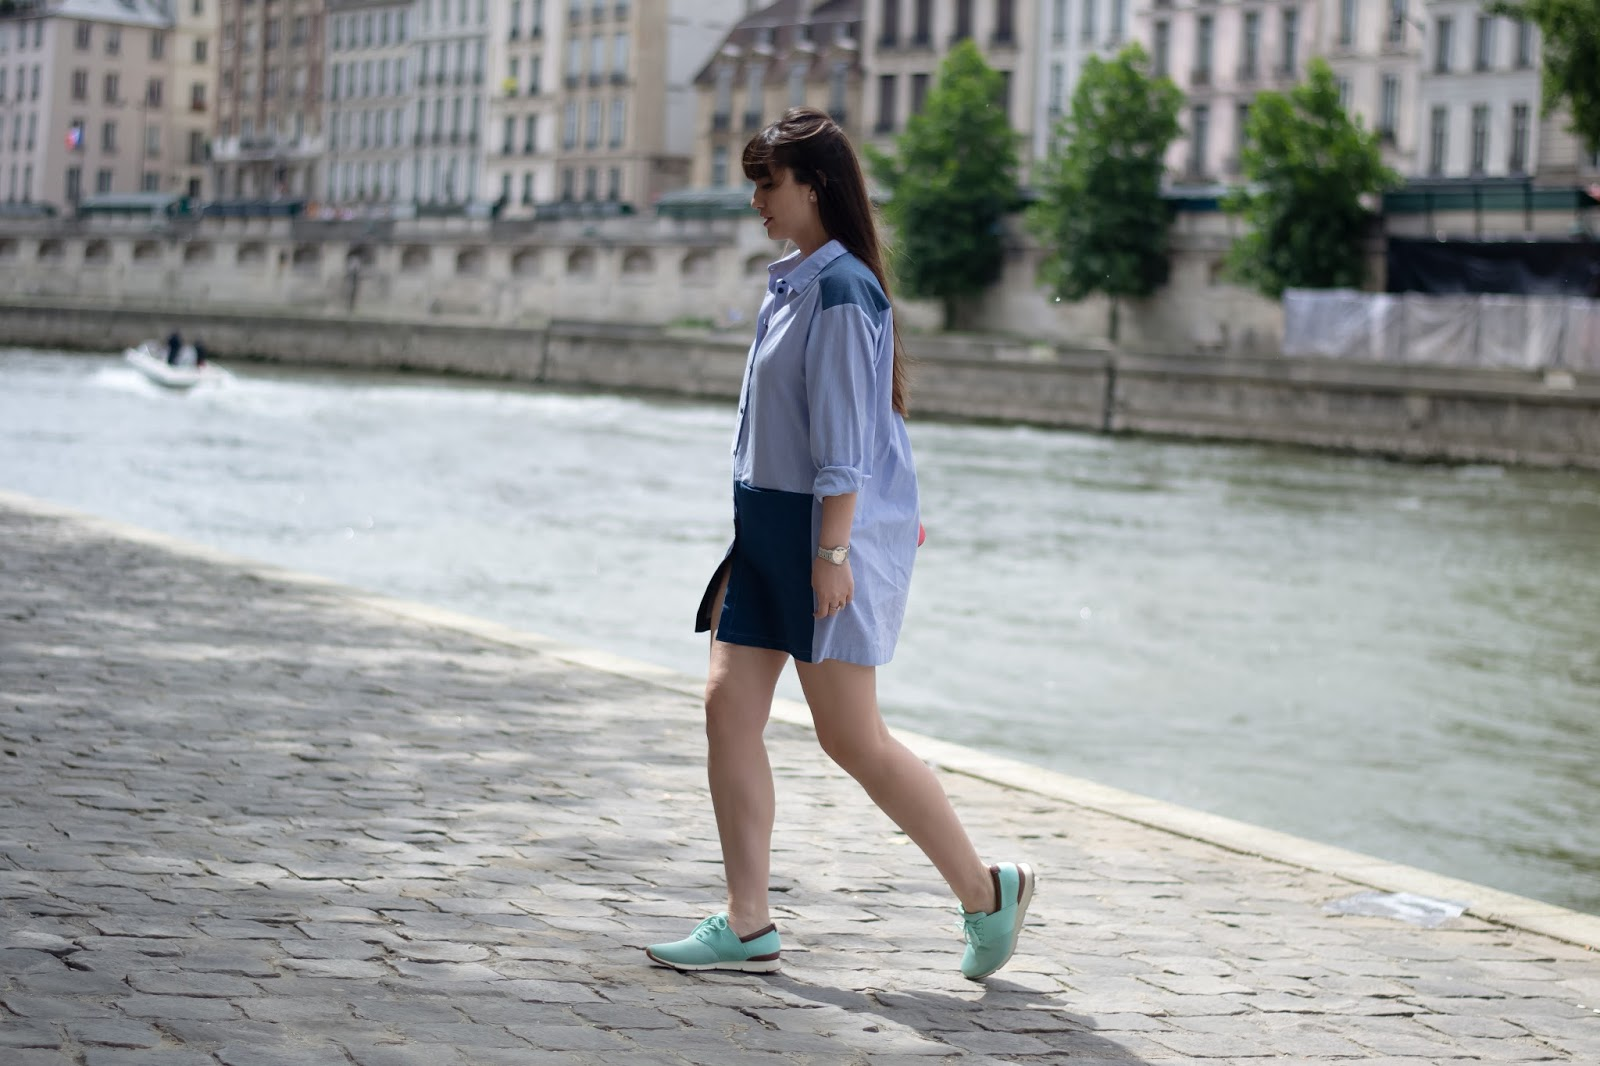 streetstyle, paris, look, mode, fashion, chic parisian style, cool, casual style, meet me in paree